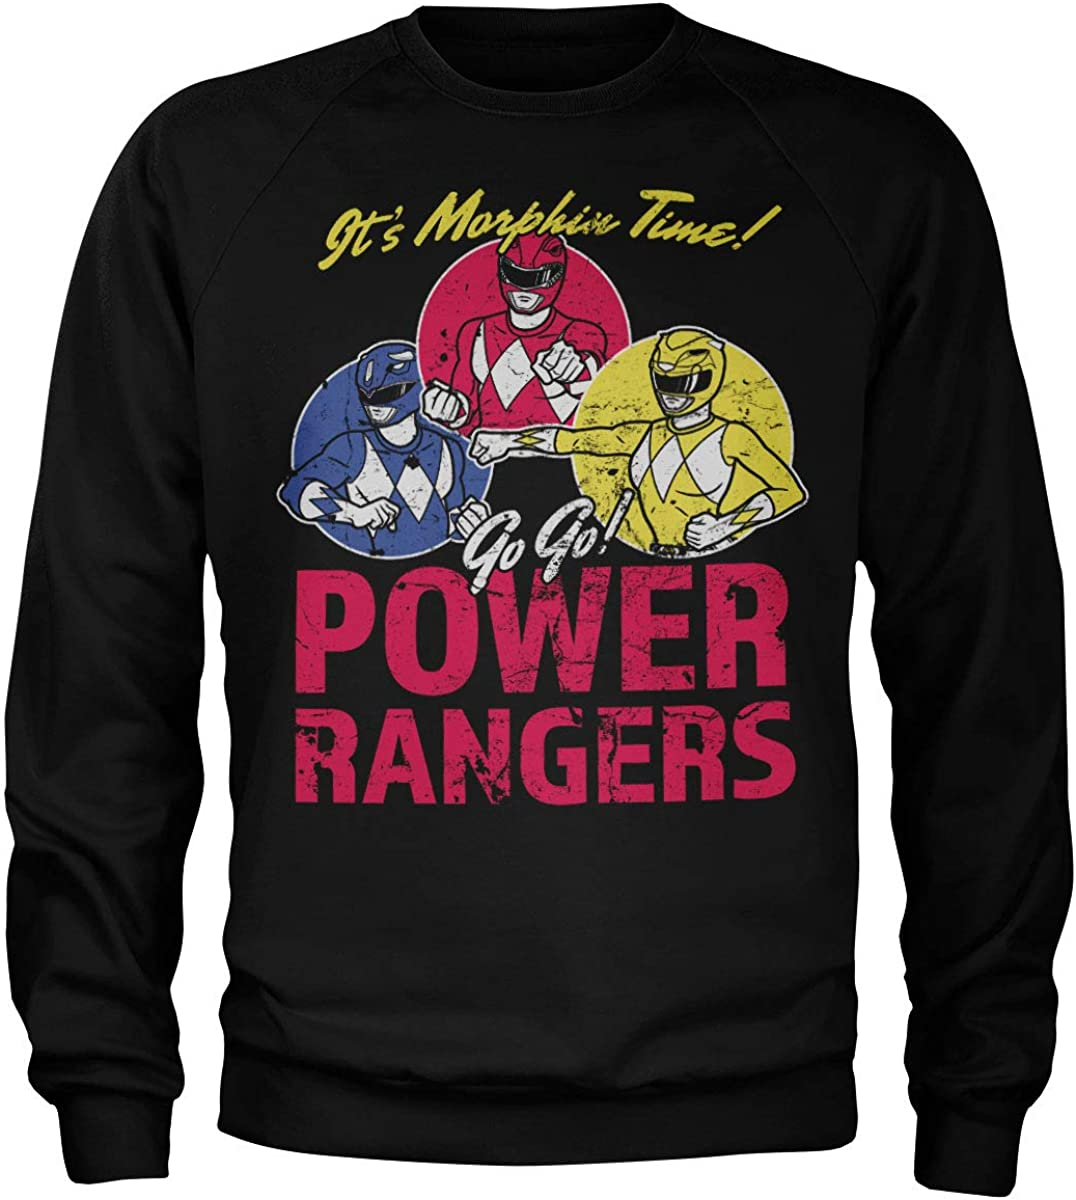 Power Rangers Officially Licensed It's Morphin Time Sweatshirt (Black), M